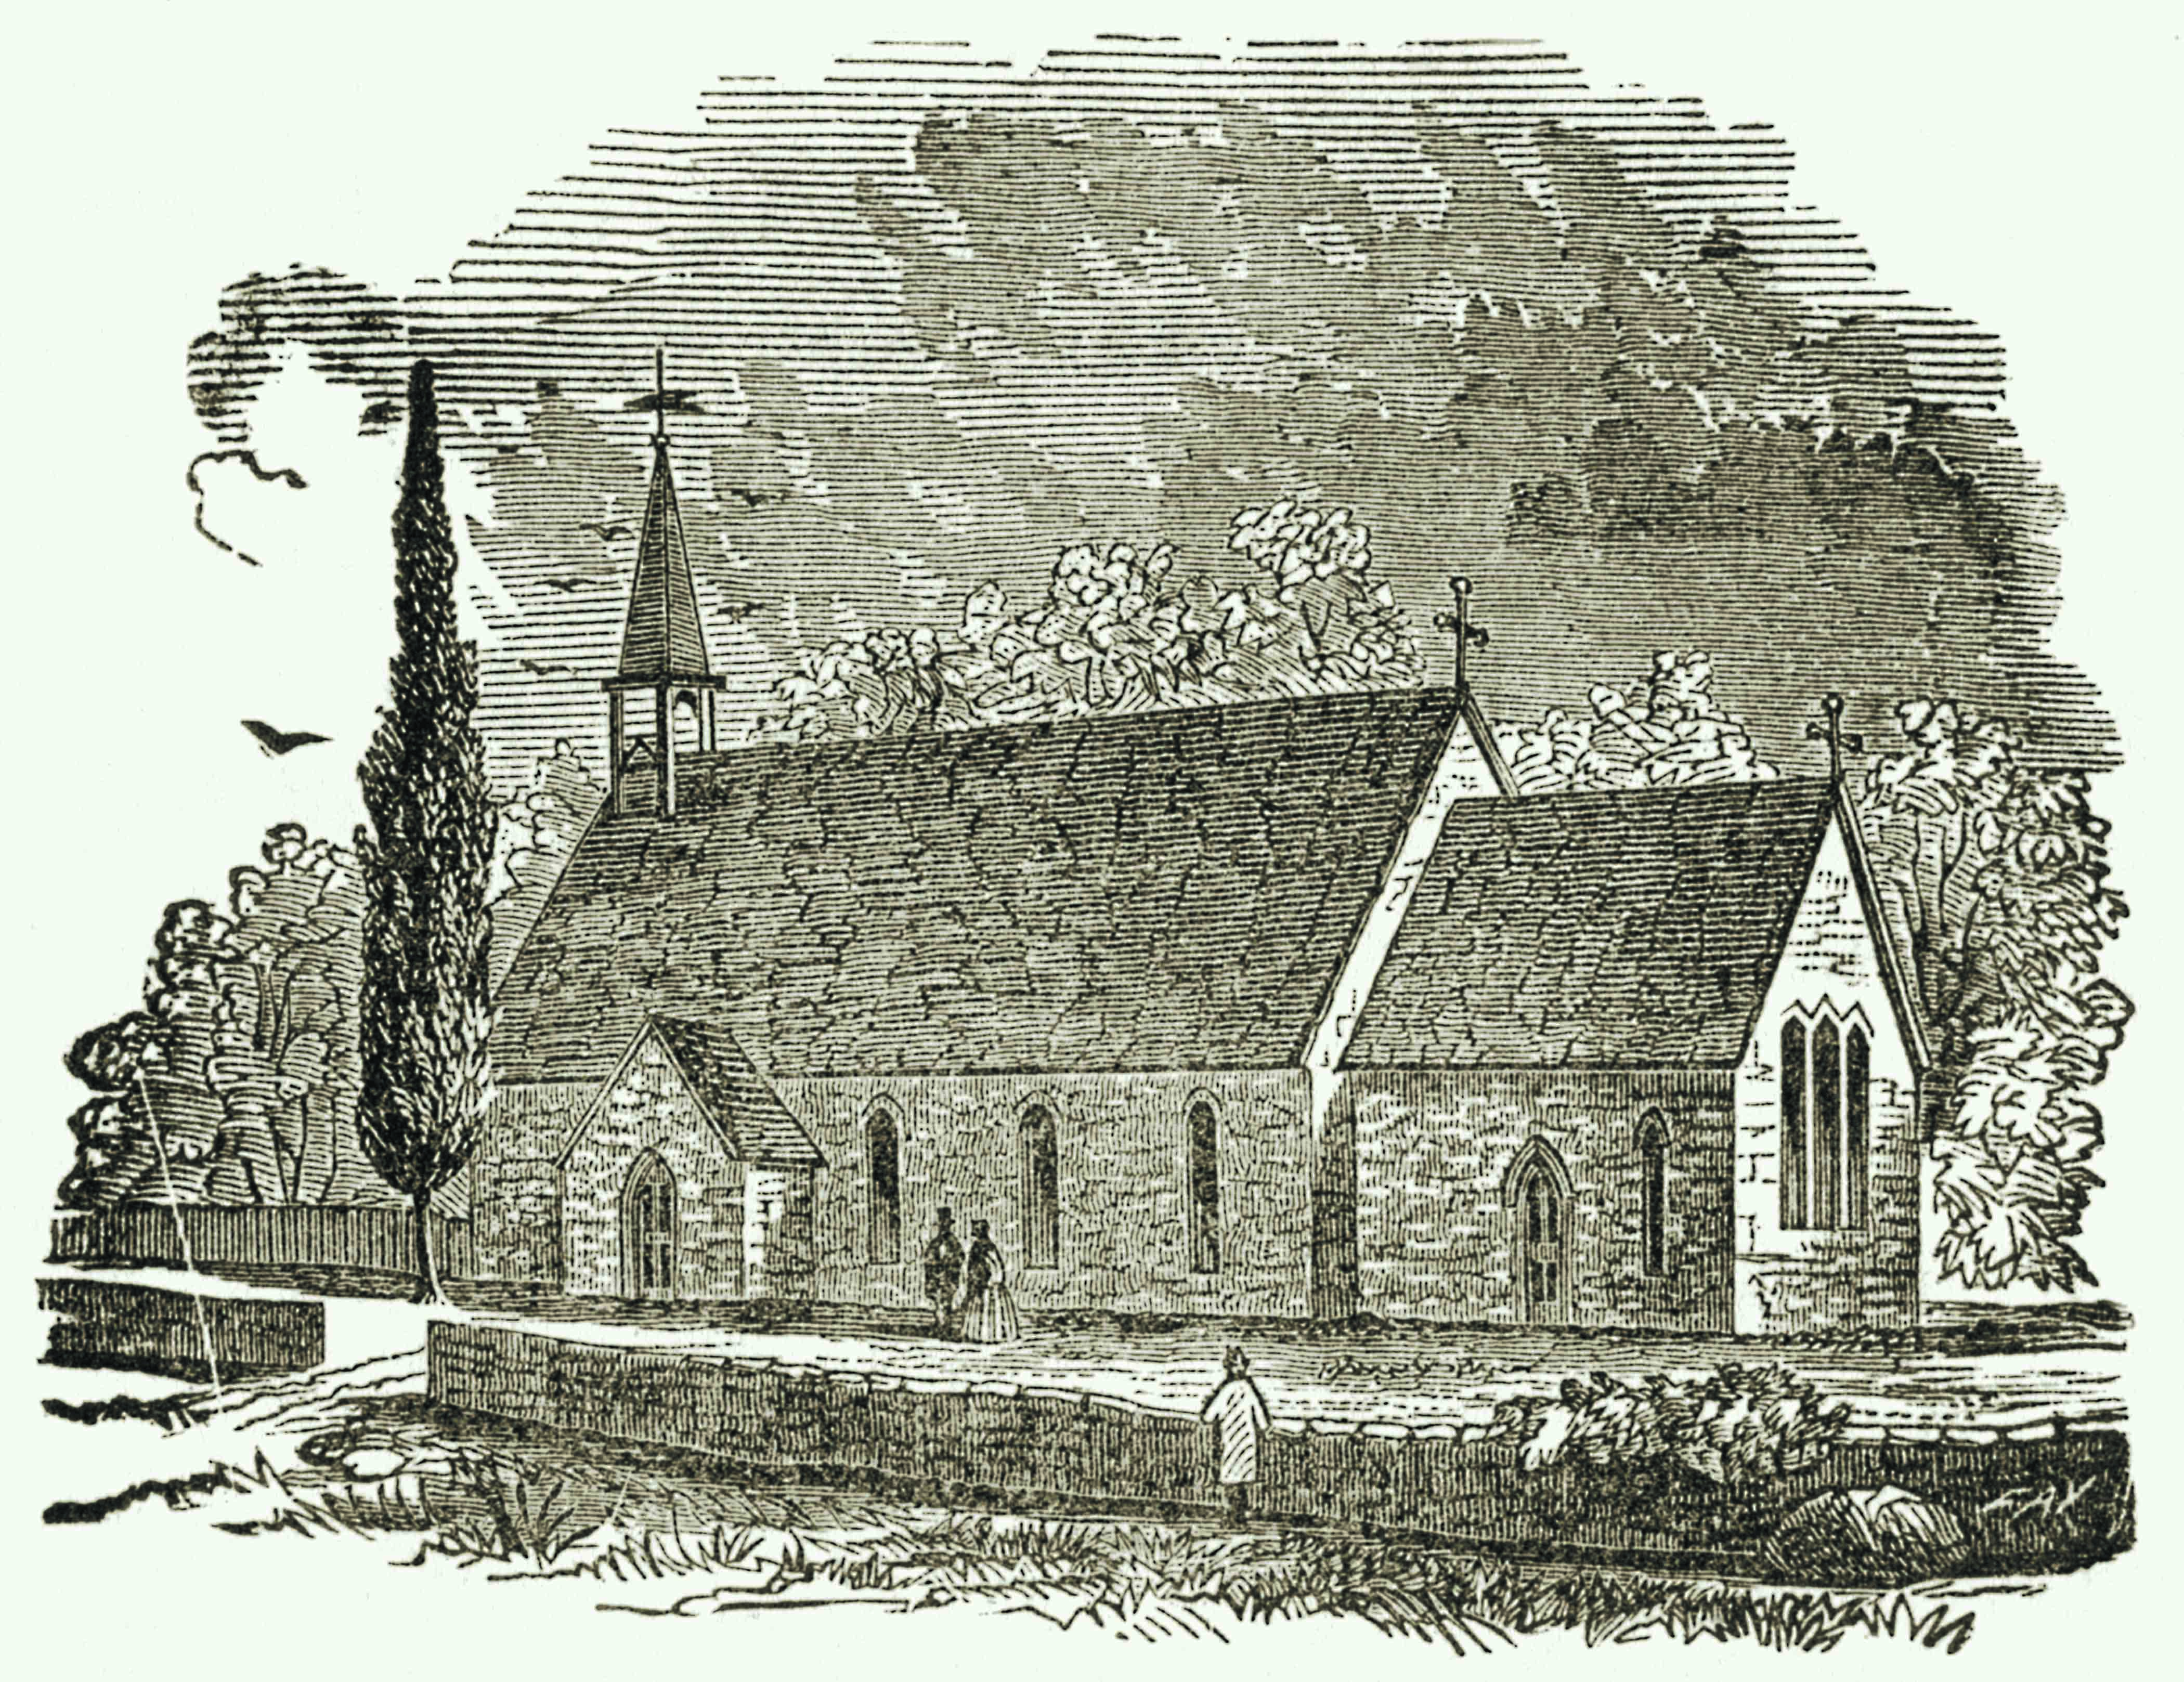 Drawn picture of the All Saints' Church